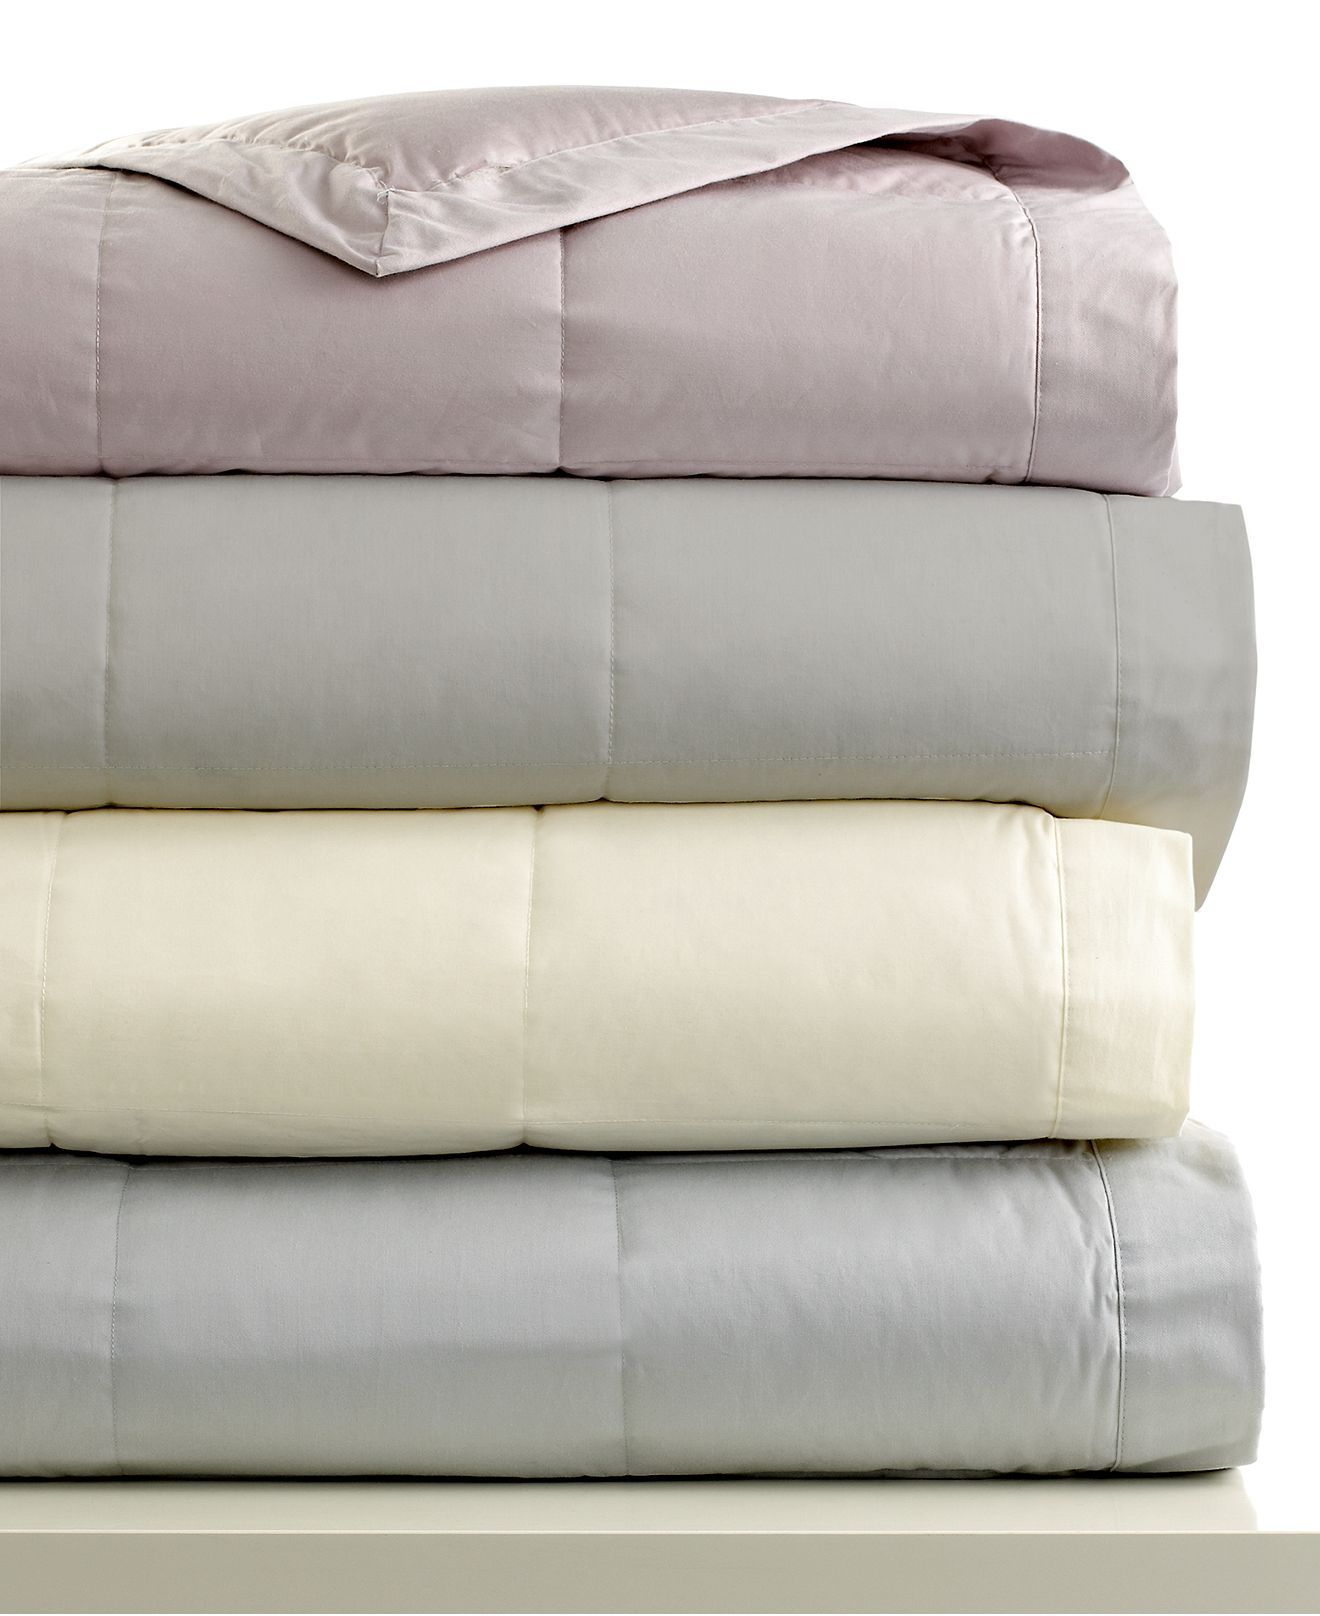 Down Blankets by Blue Ridge Bedding via Macy's(画像あり)